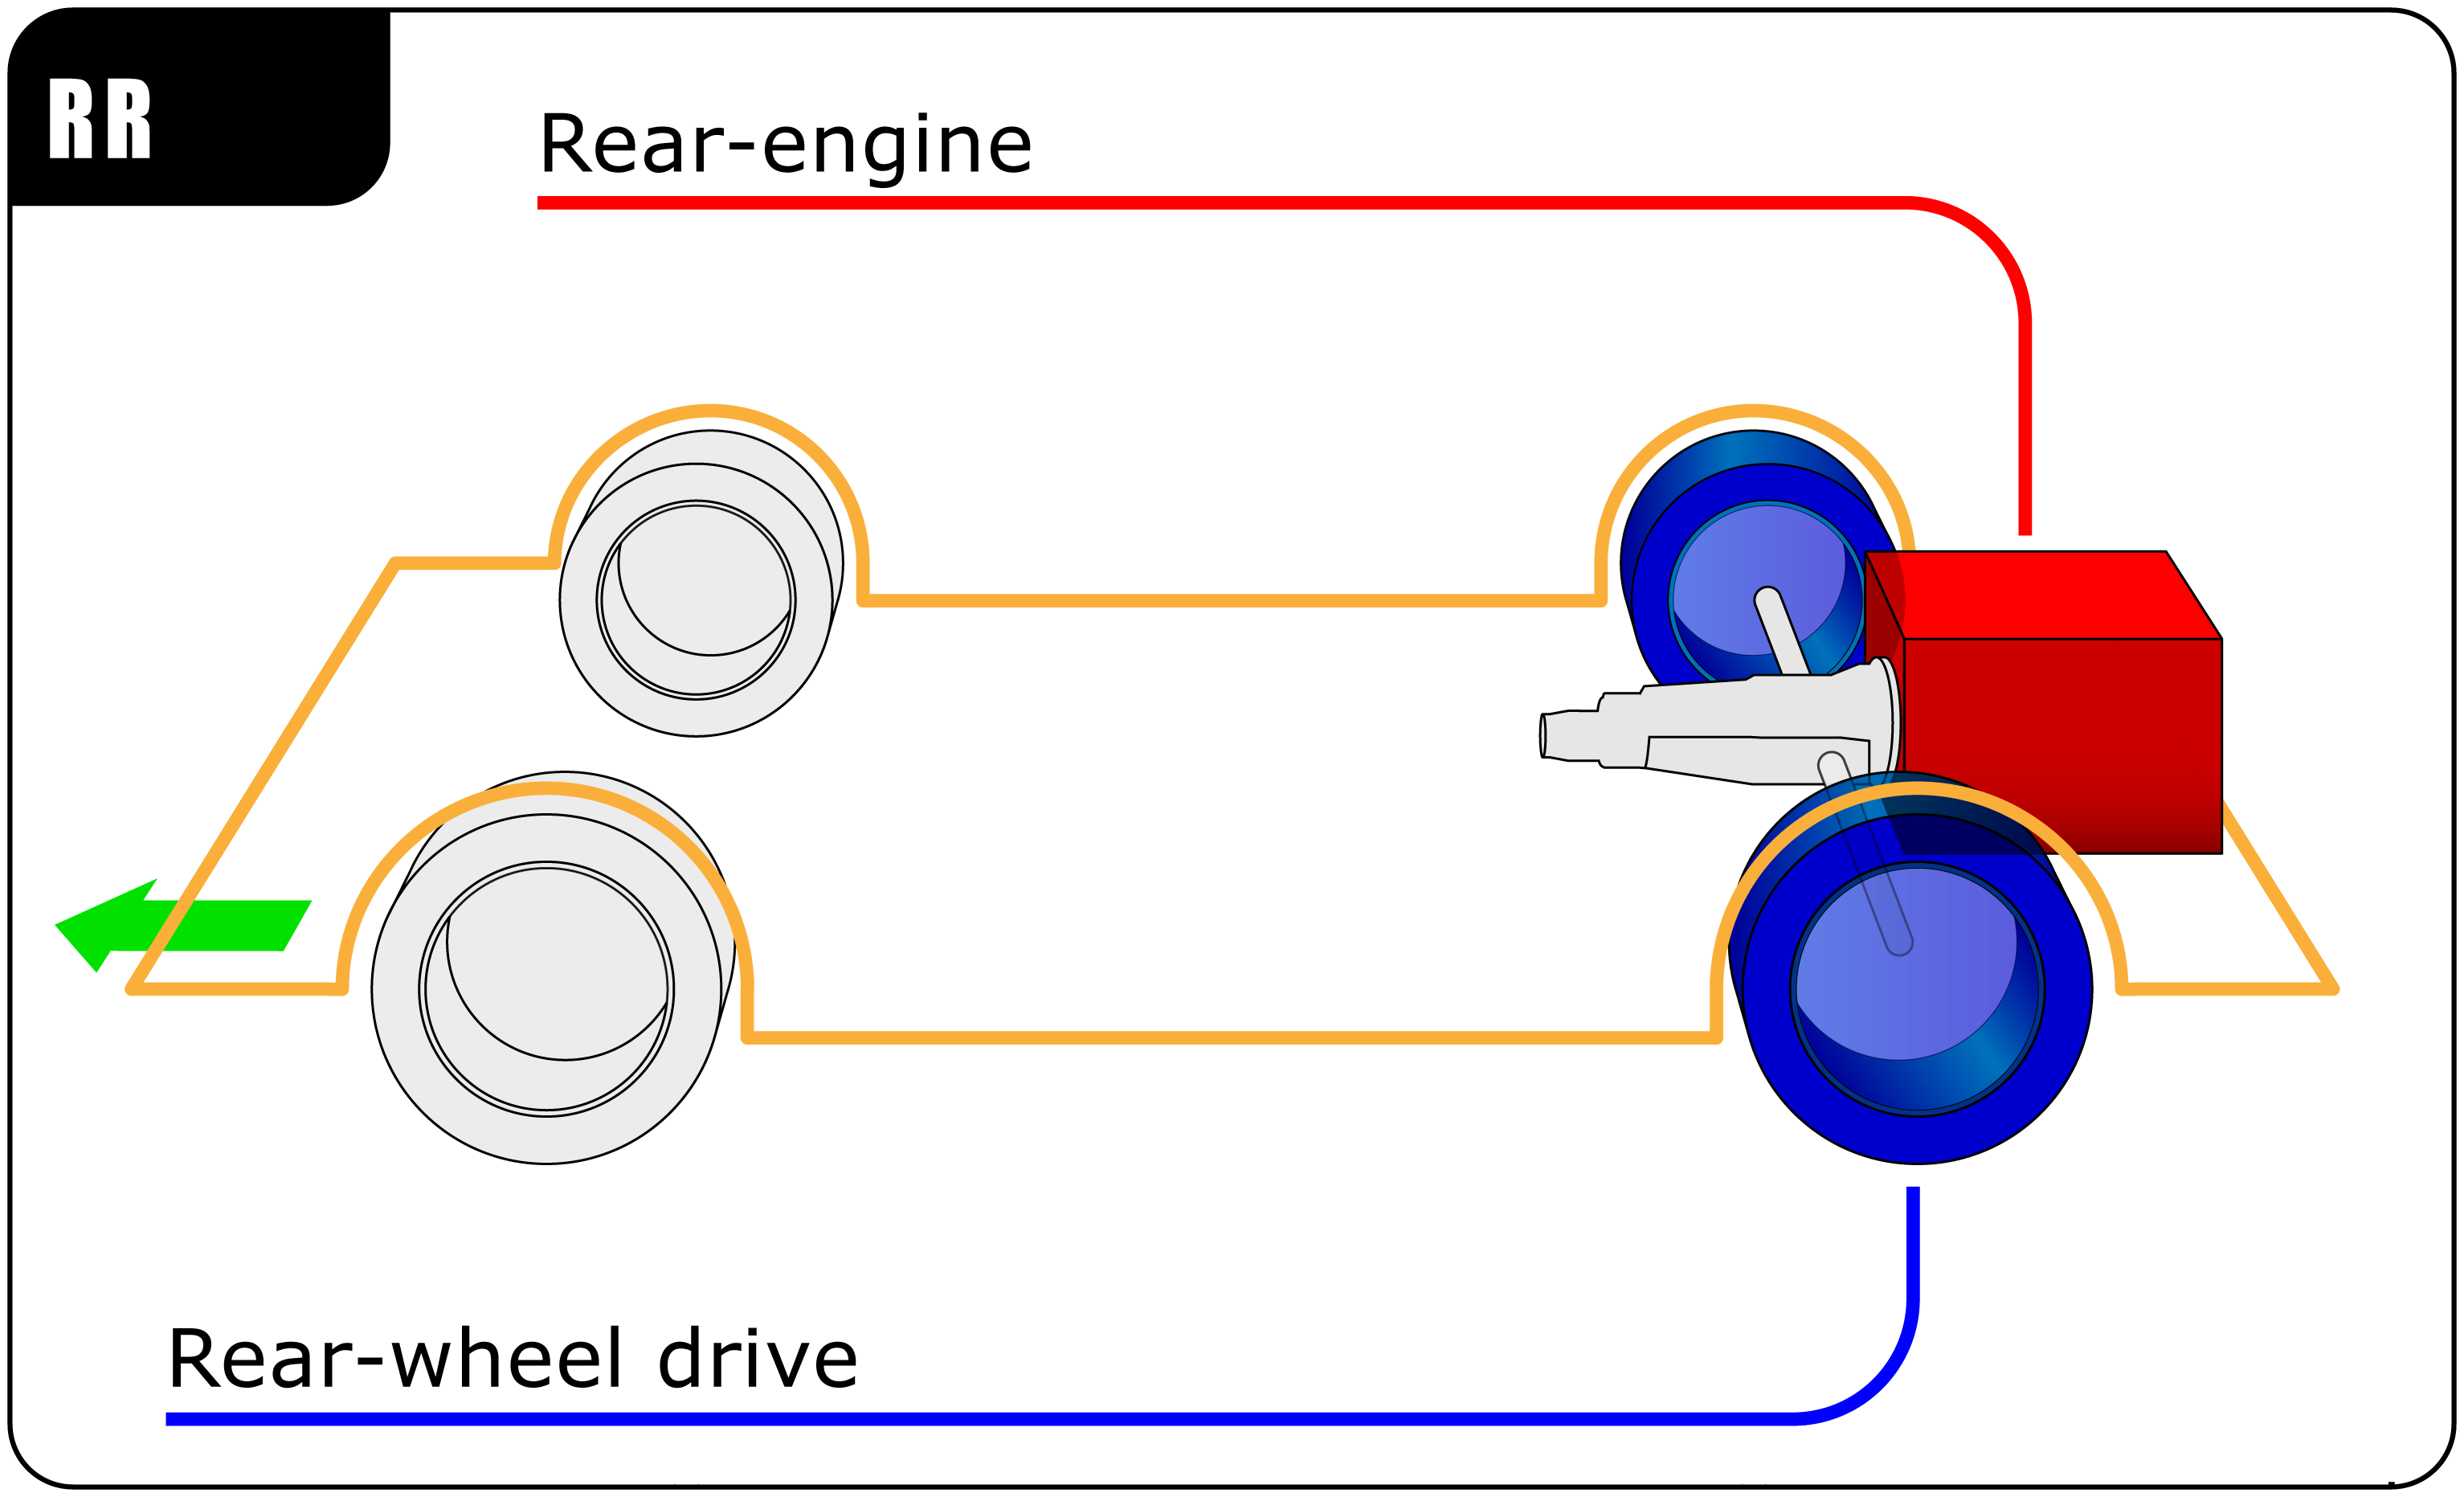 rear-engine, rear-wheel-drive layout